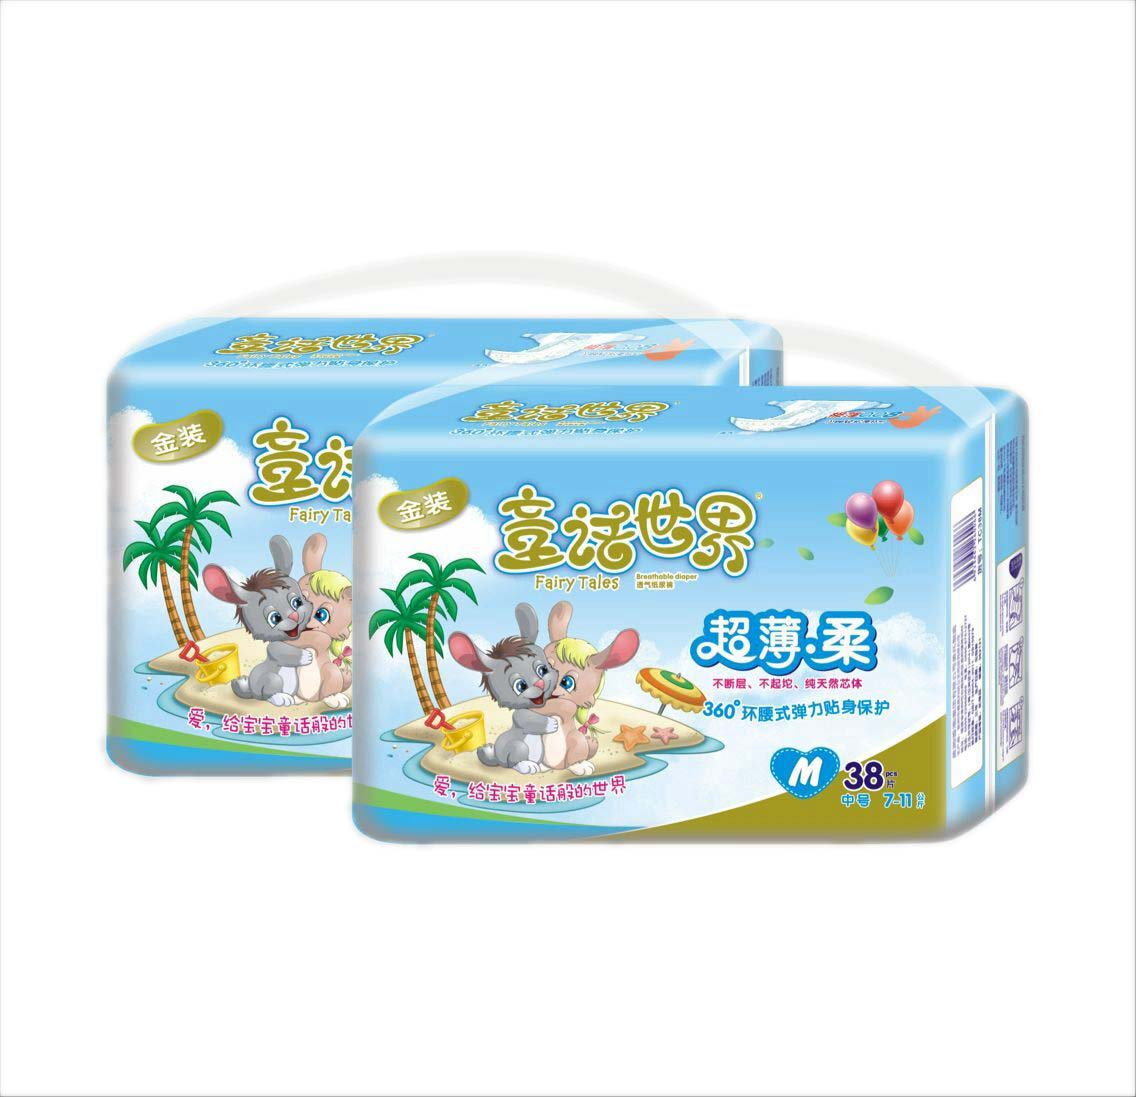 Celebrating for our new brand Fairy Tales Baby Diapers is born!